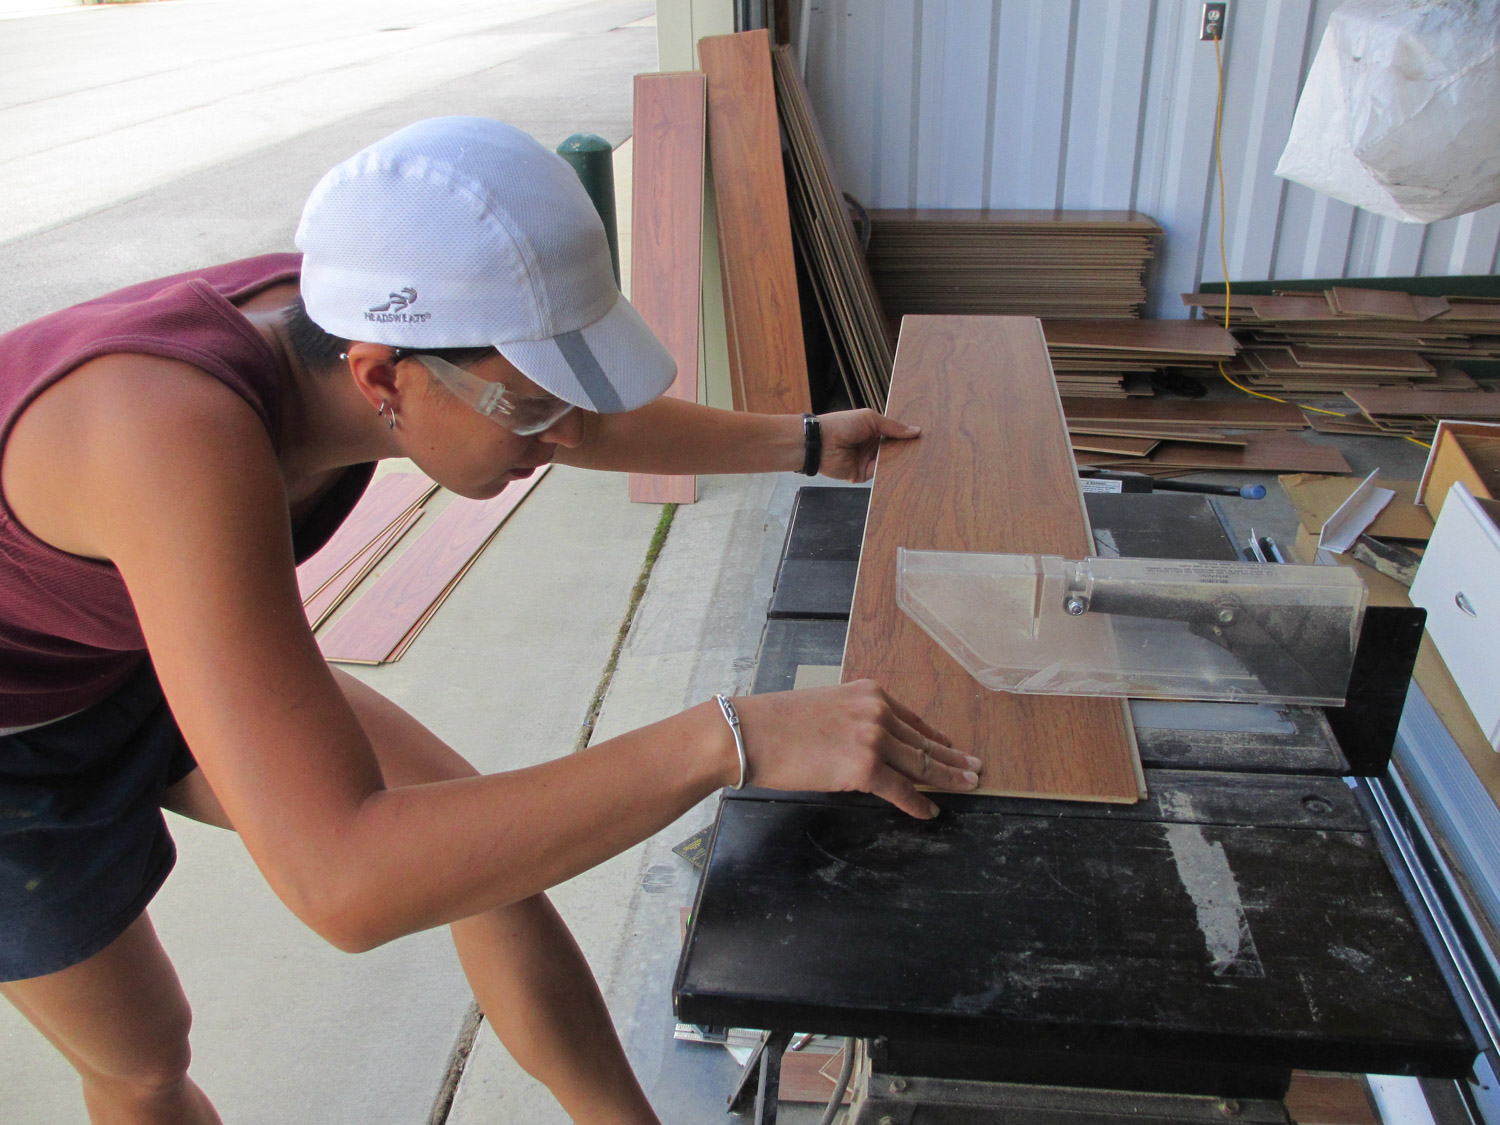 The table saw was used to cut laminate floor pieces to length. Our table saw was extremely ghetto and we're so lucky to still have all of our fingers.